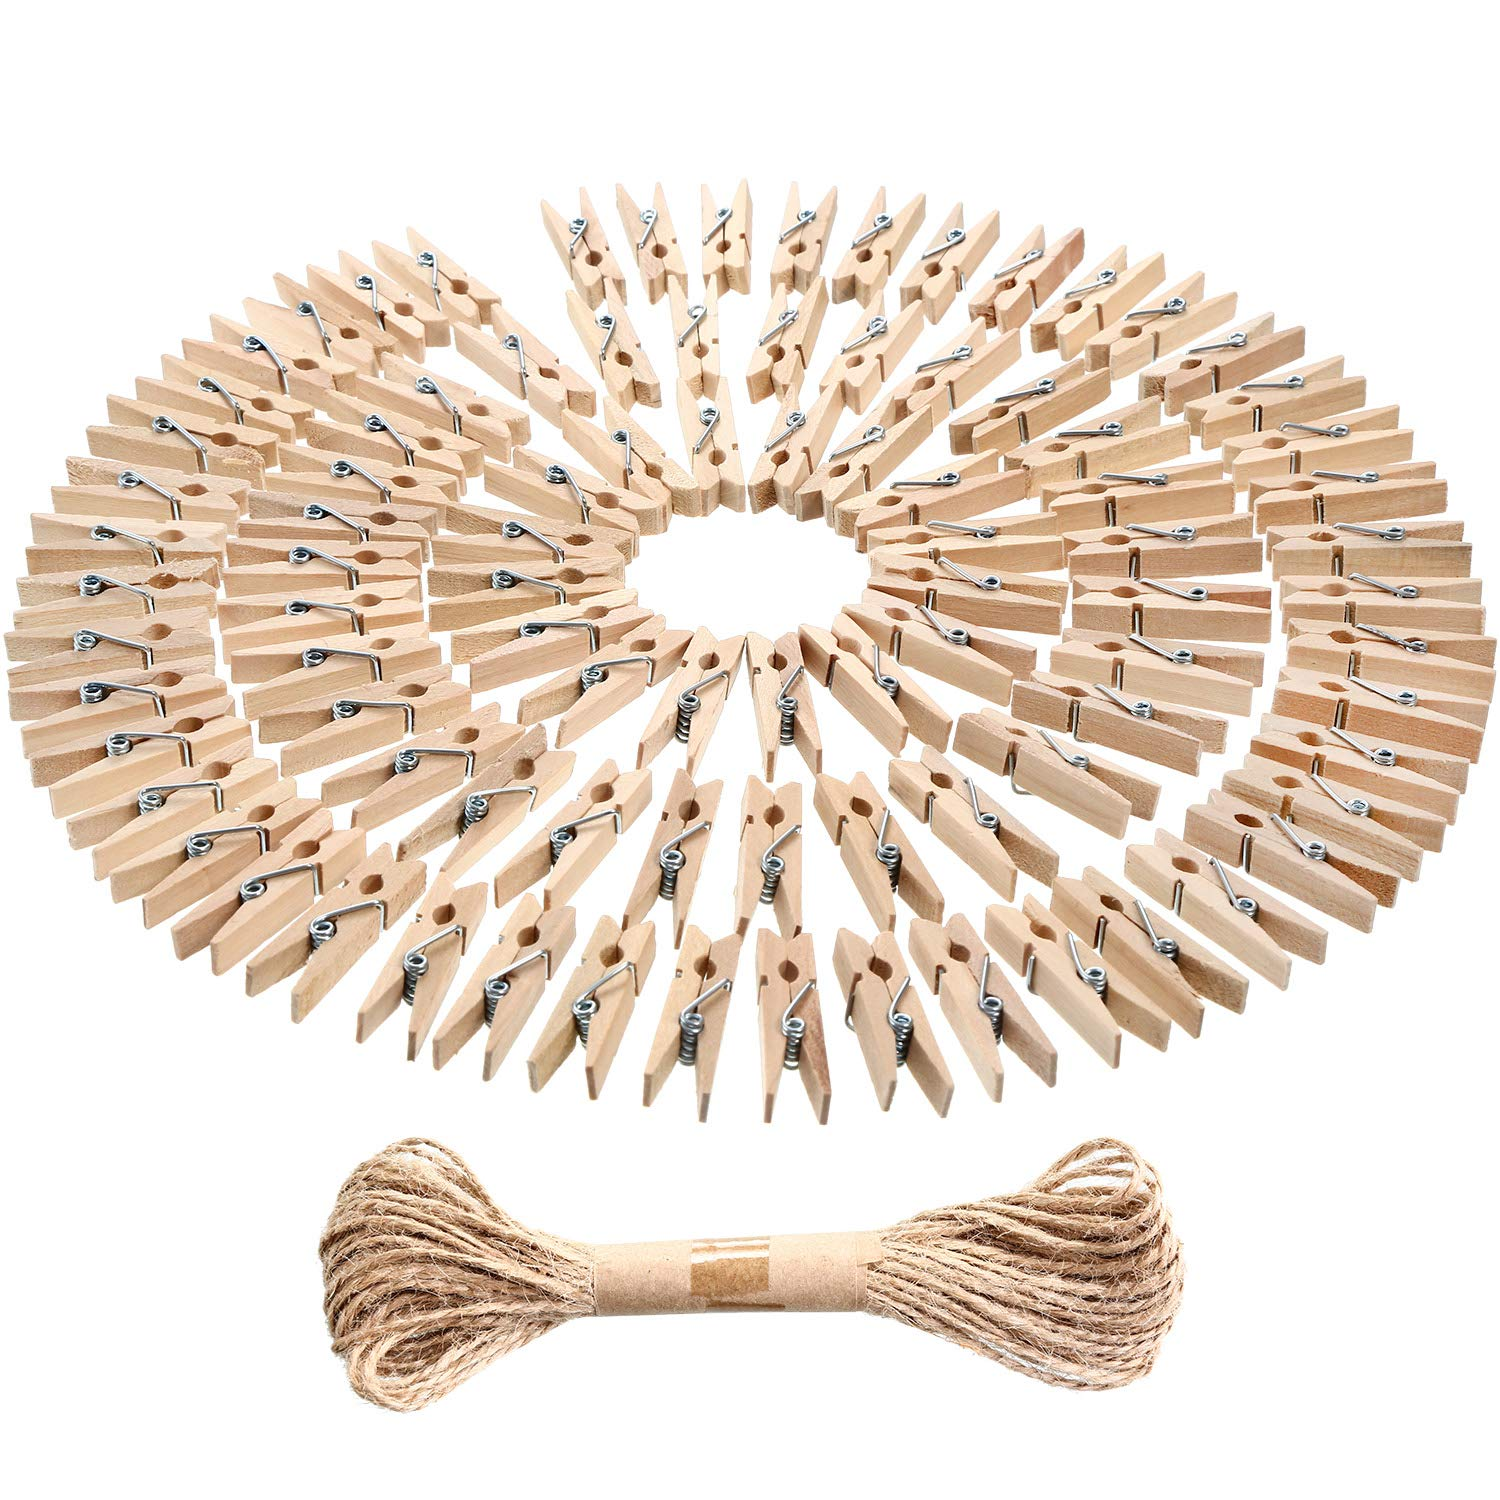 eBoot Mini Natural Wooden Clothespins Photo Paper Peg Pin Craft Clips with Natural Twine, 100 Pieces (10 Colors) No Model